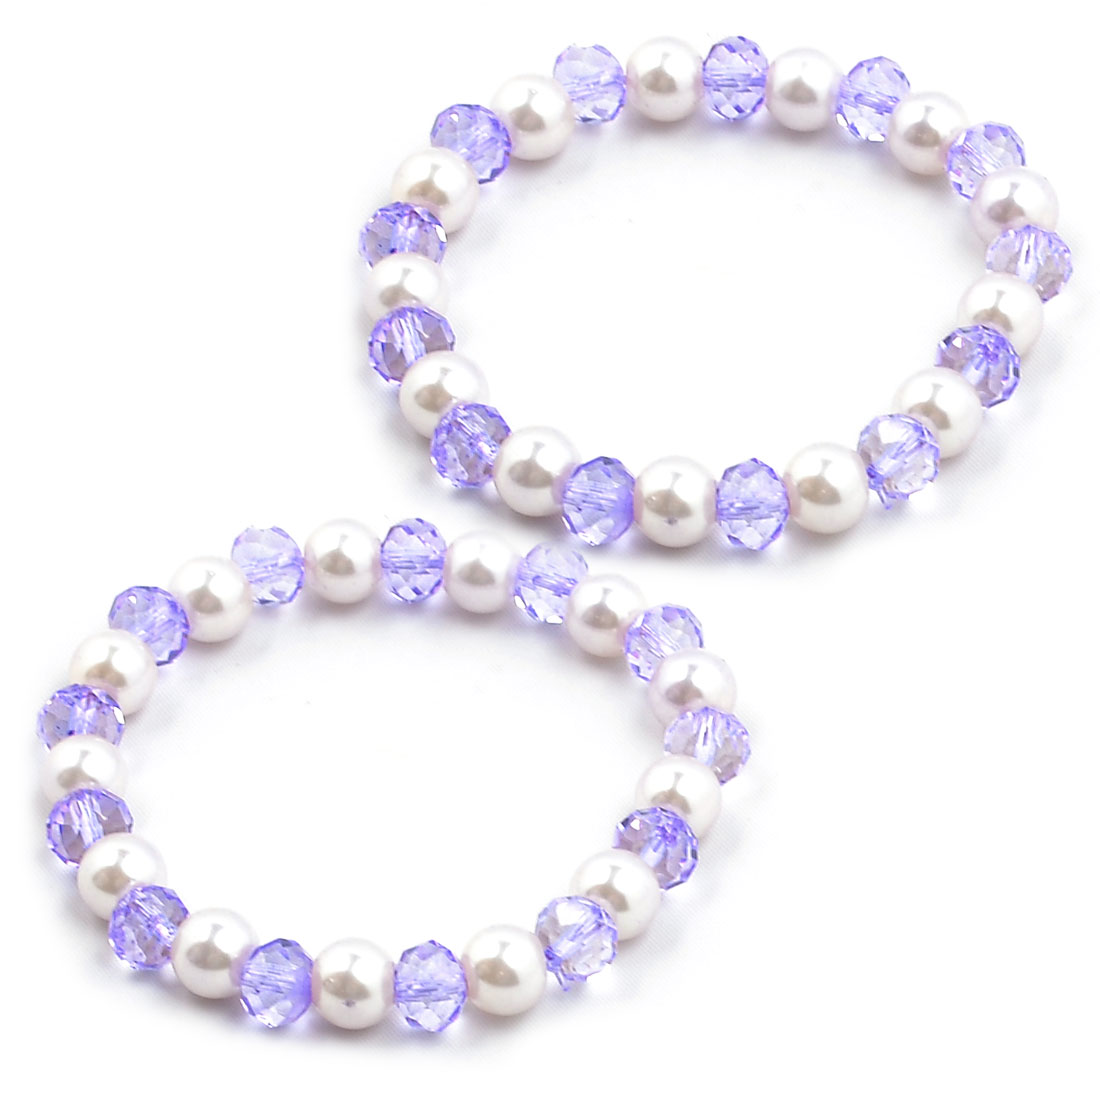 Pair Artificial Pearl Beads Stretch Bracelet Jewelry White Clear Purple